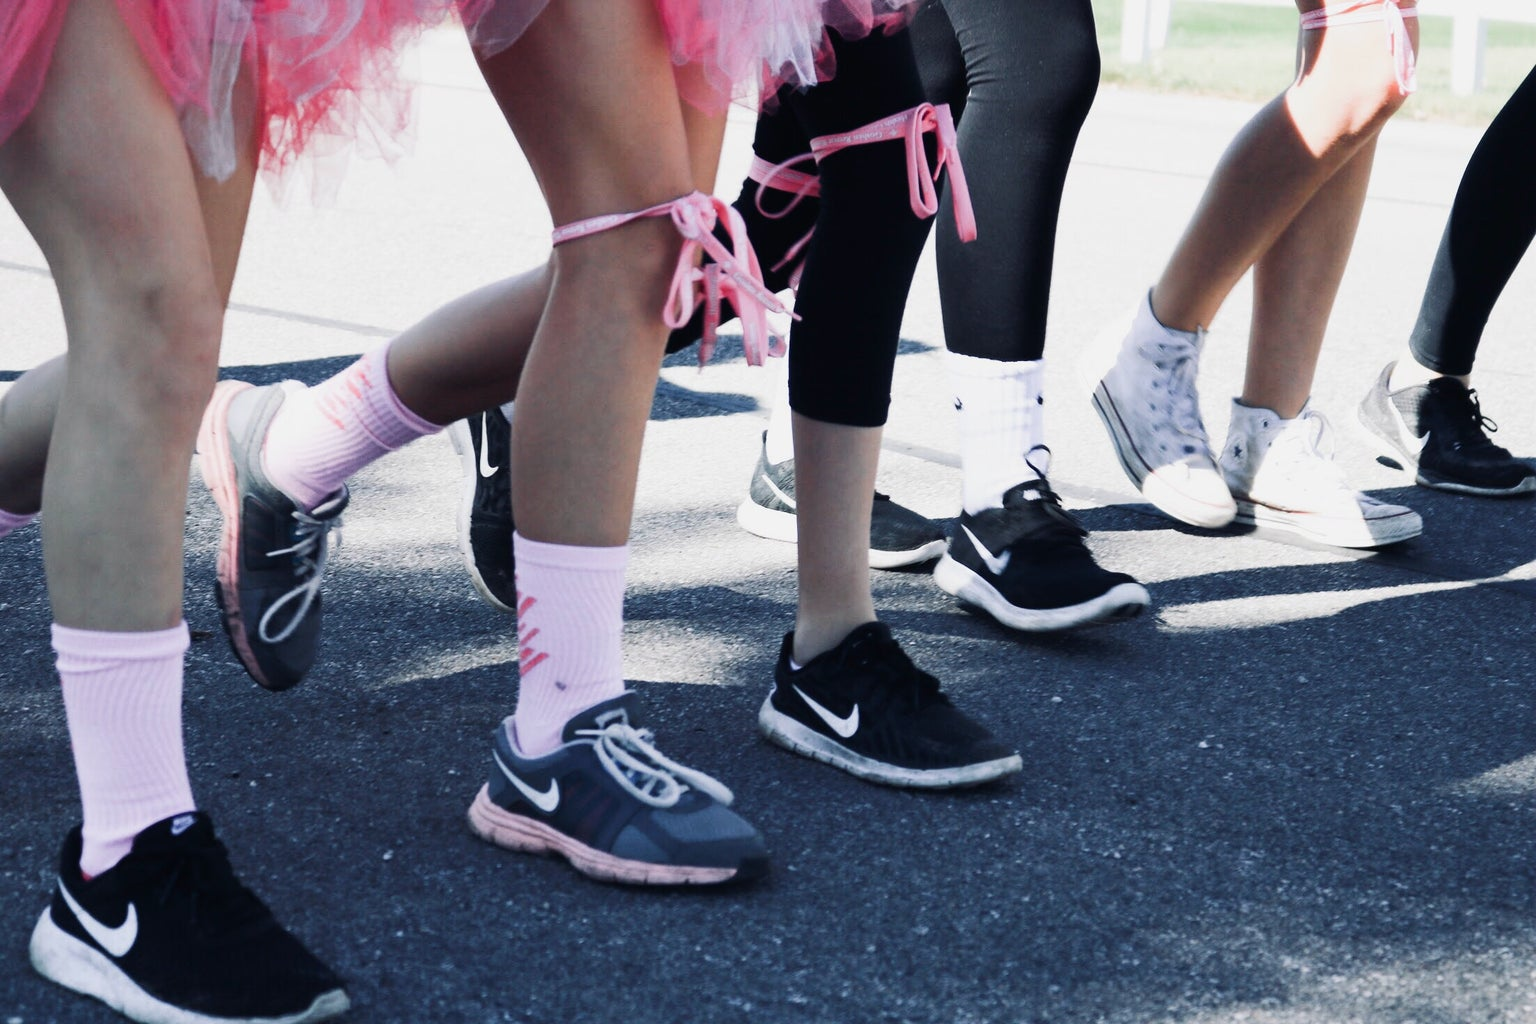 pink ribbon wrapped around group of legs